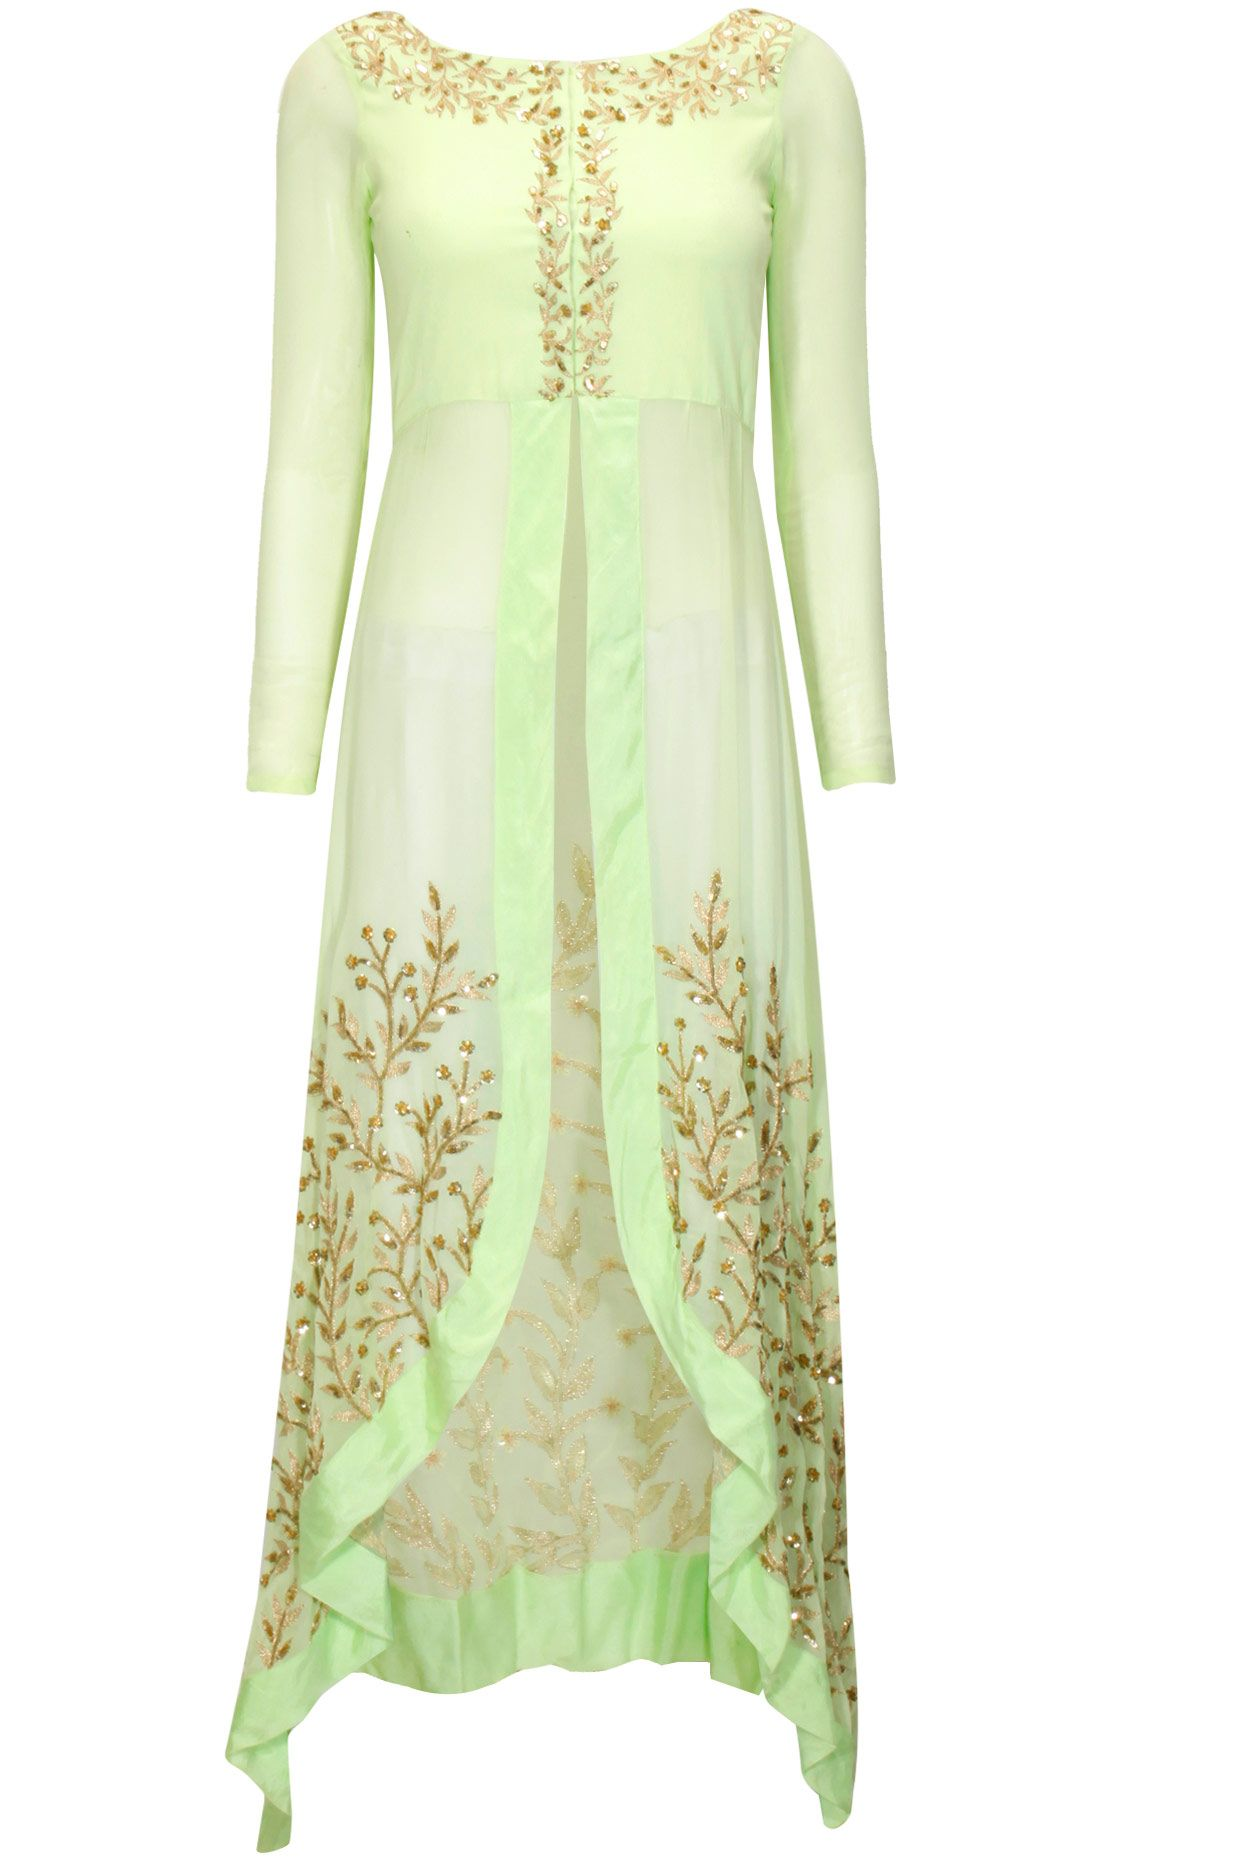 Mint Green Embroidered Highlow Jacket Available Only At